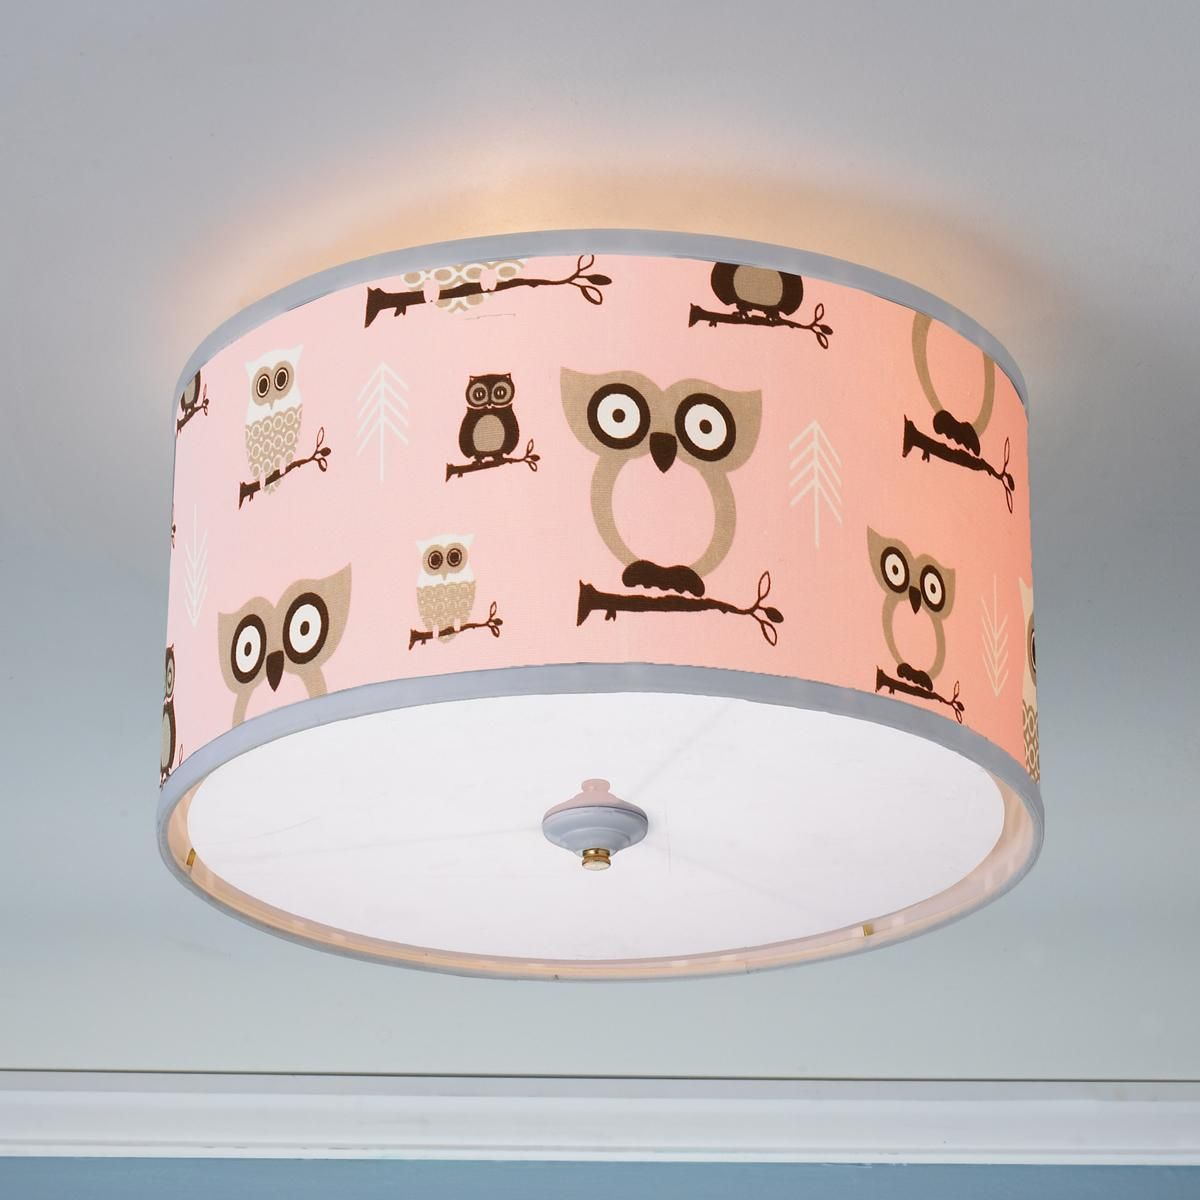 Light Bulb For Baby Room Owls Drum Shade Ceiling Light Drum Shade Ceiling Lights